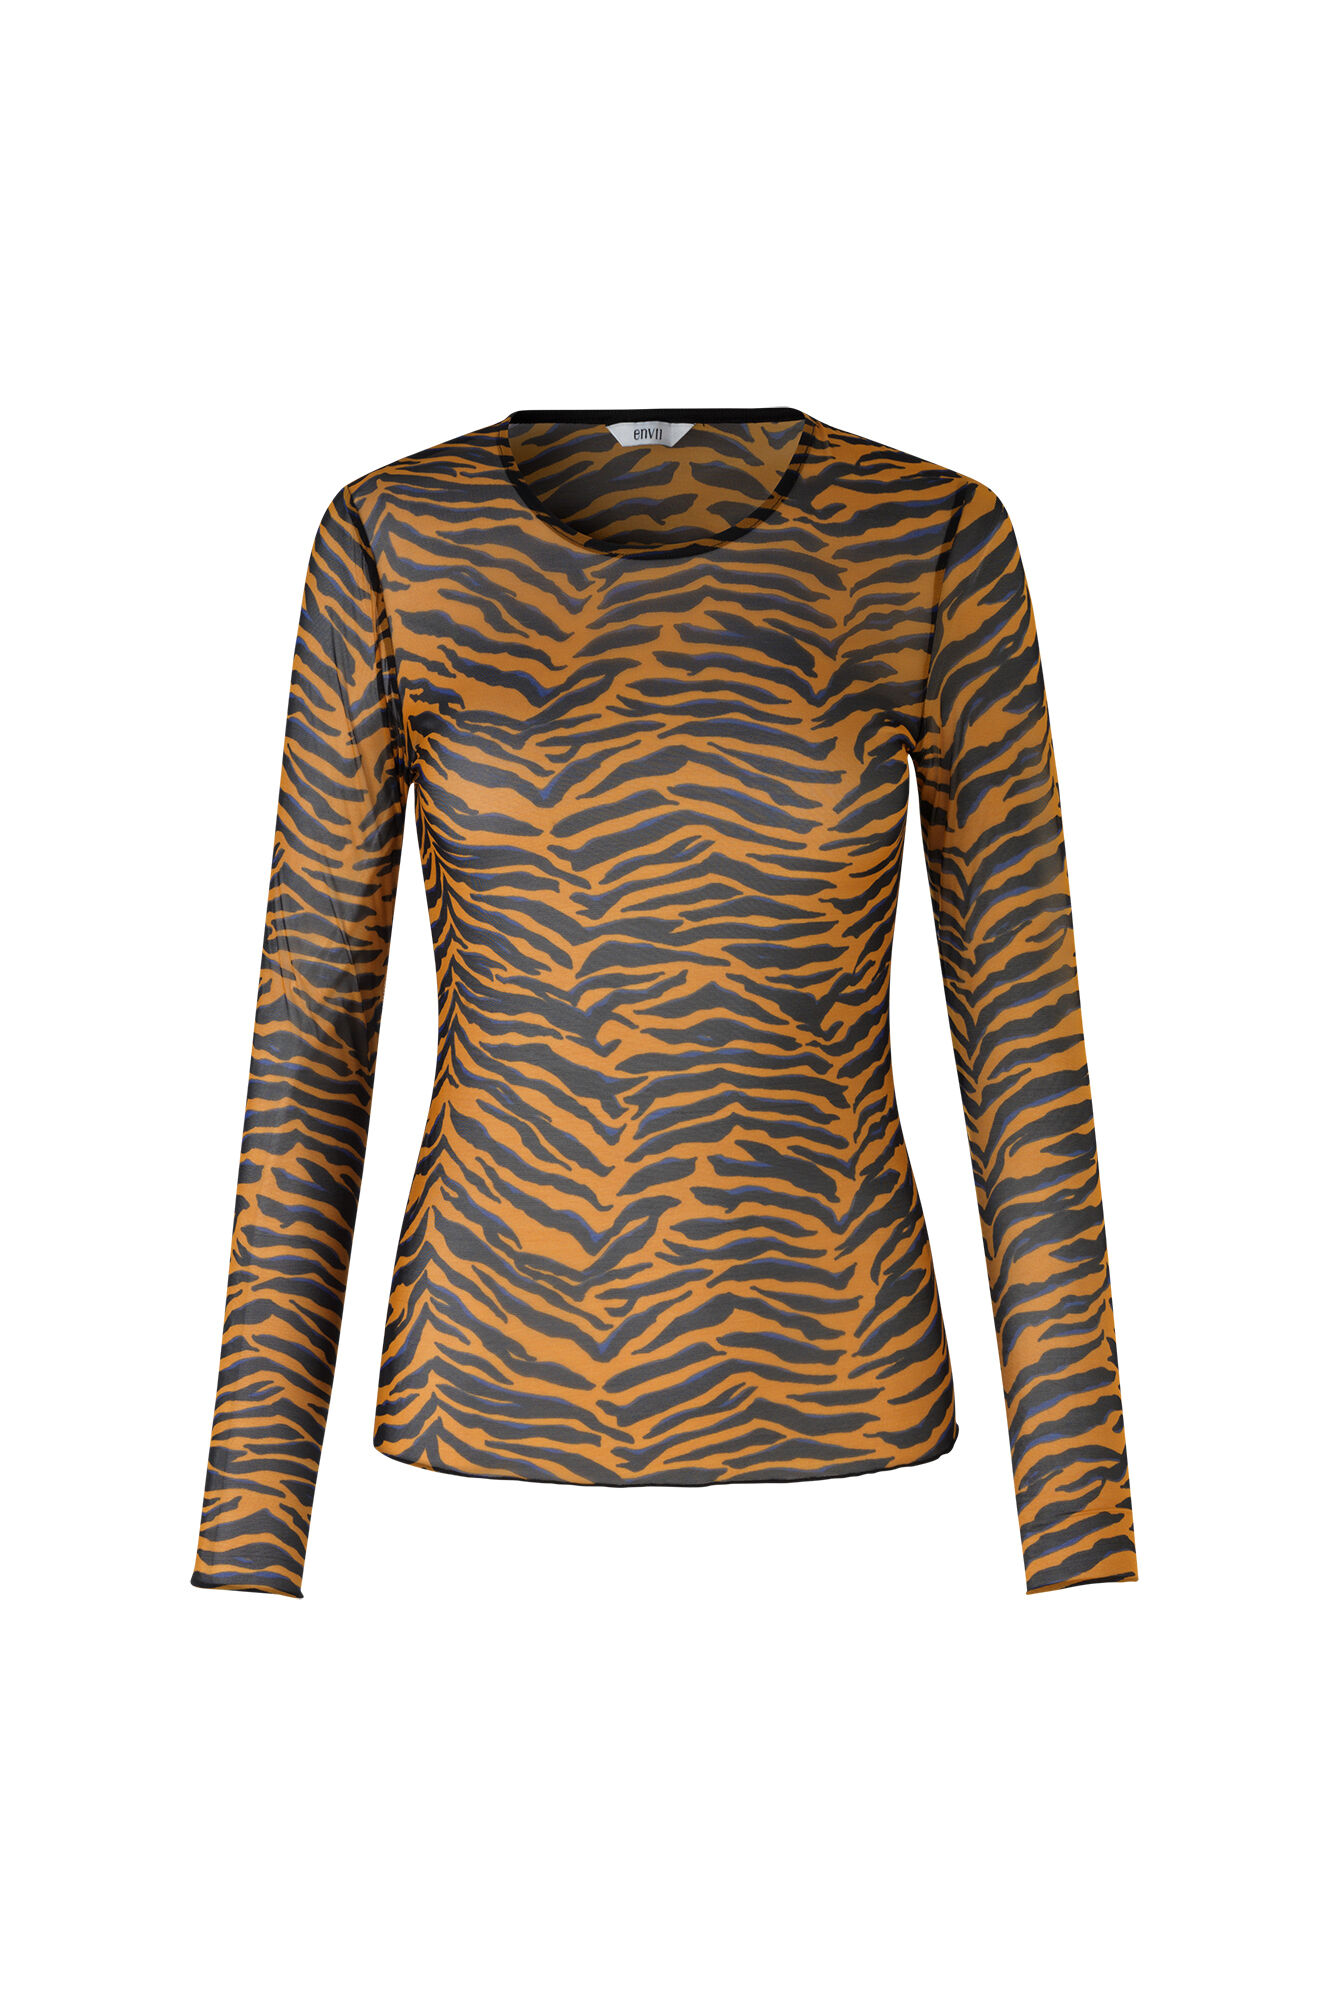 ENRESORT LS TEE AOP 5954, SUDAN BROWN TIGER AOP